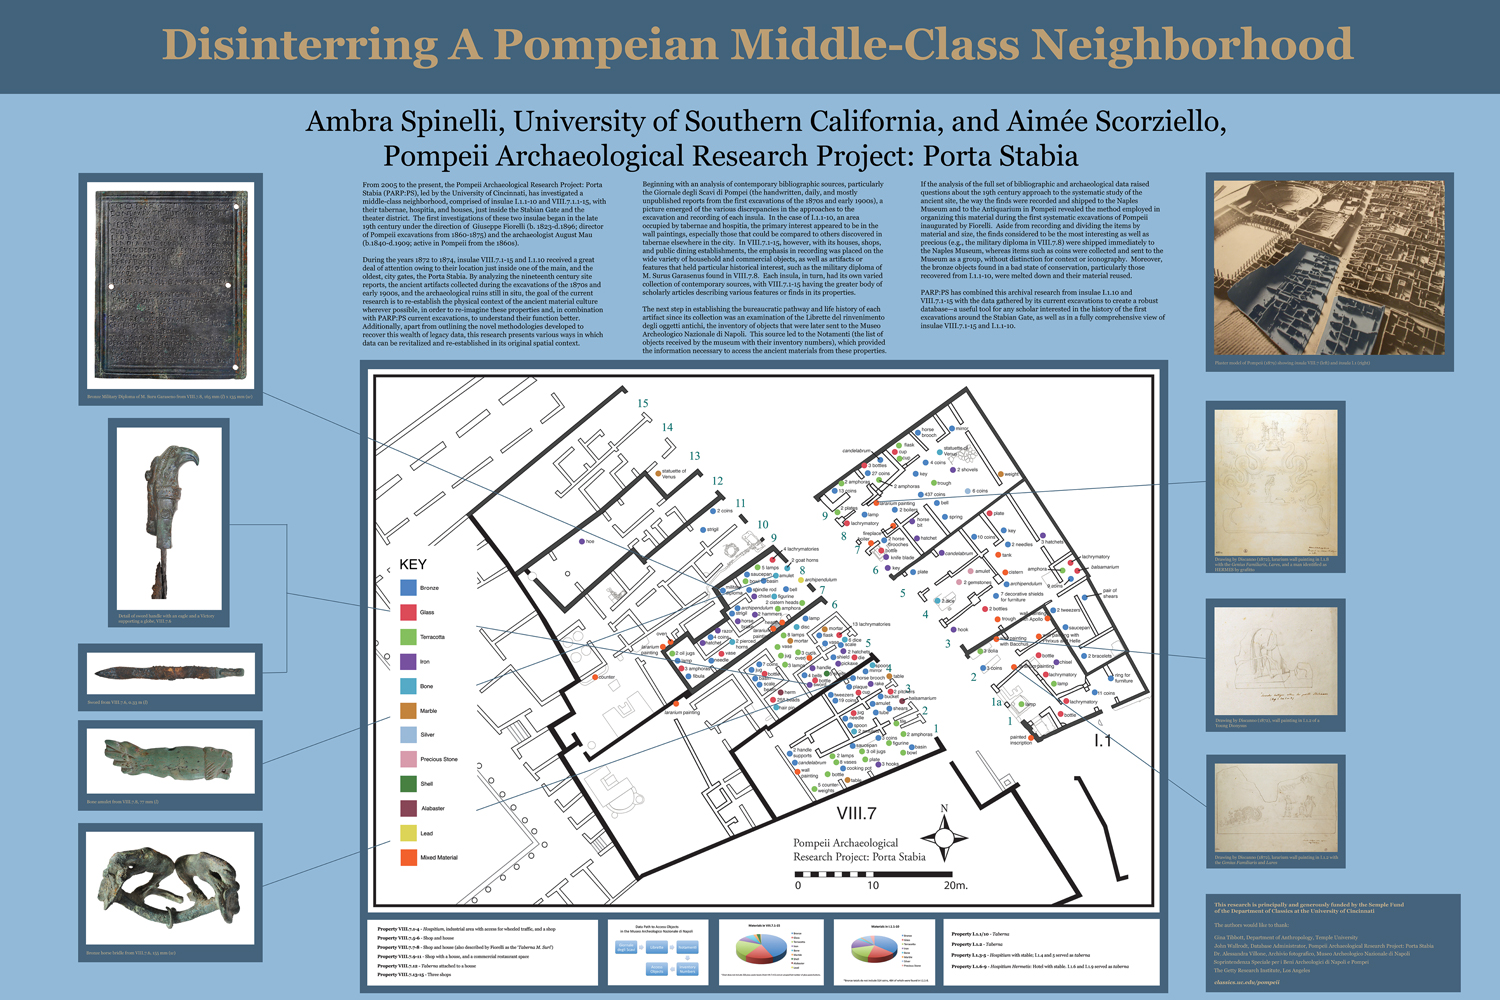 Disinterring a Pompeian Middle-Class Neighborhood by Ambra Spinelli,